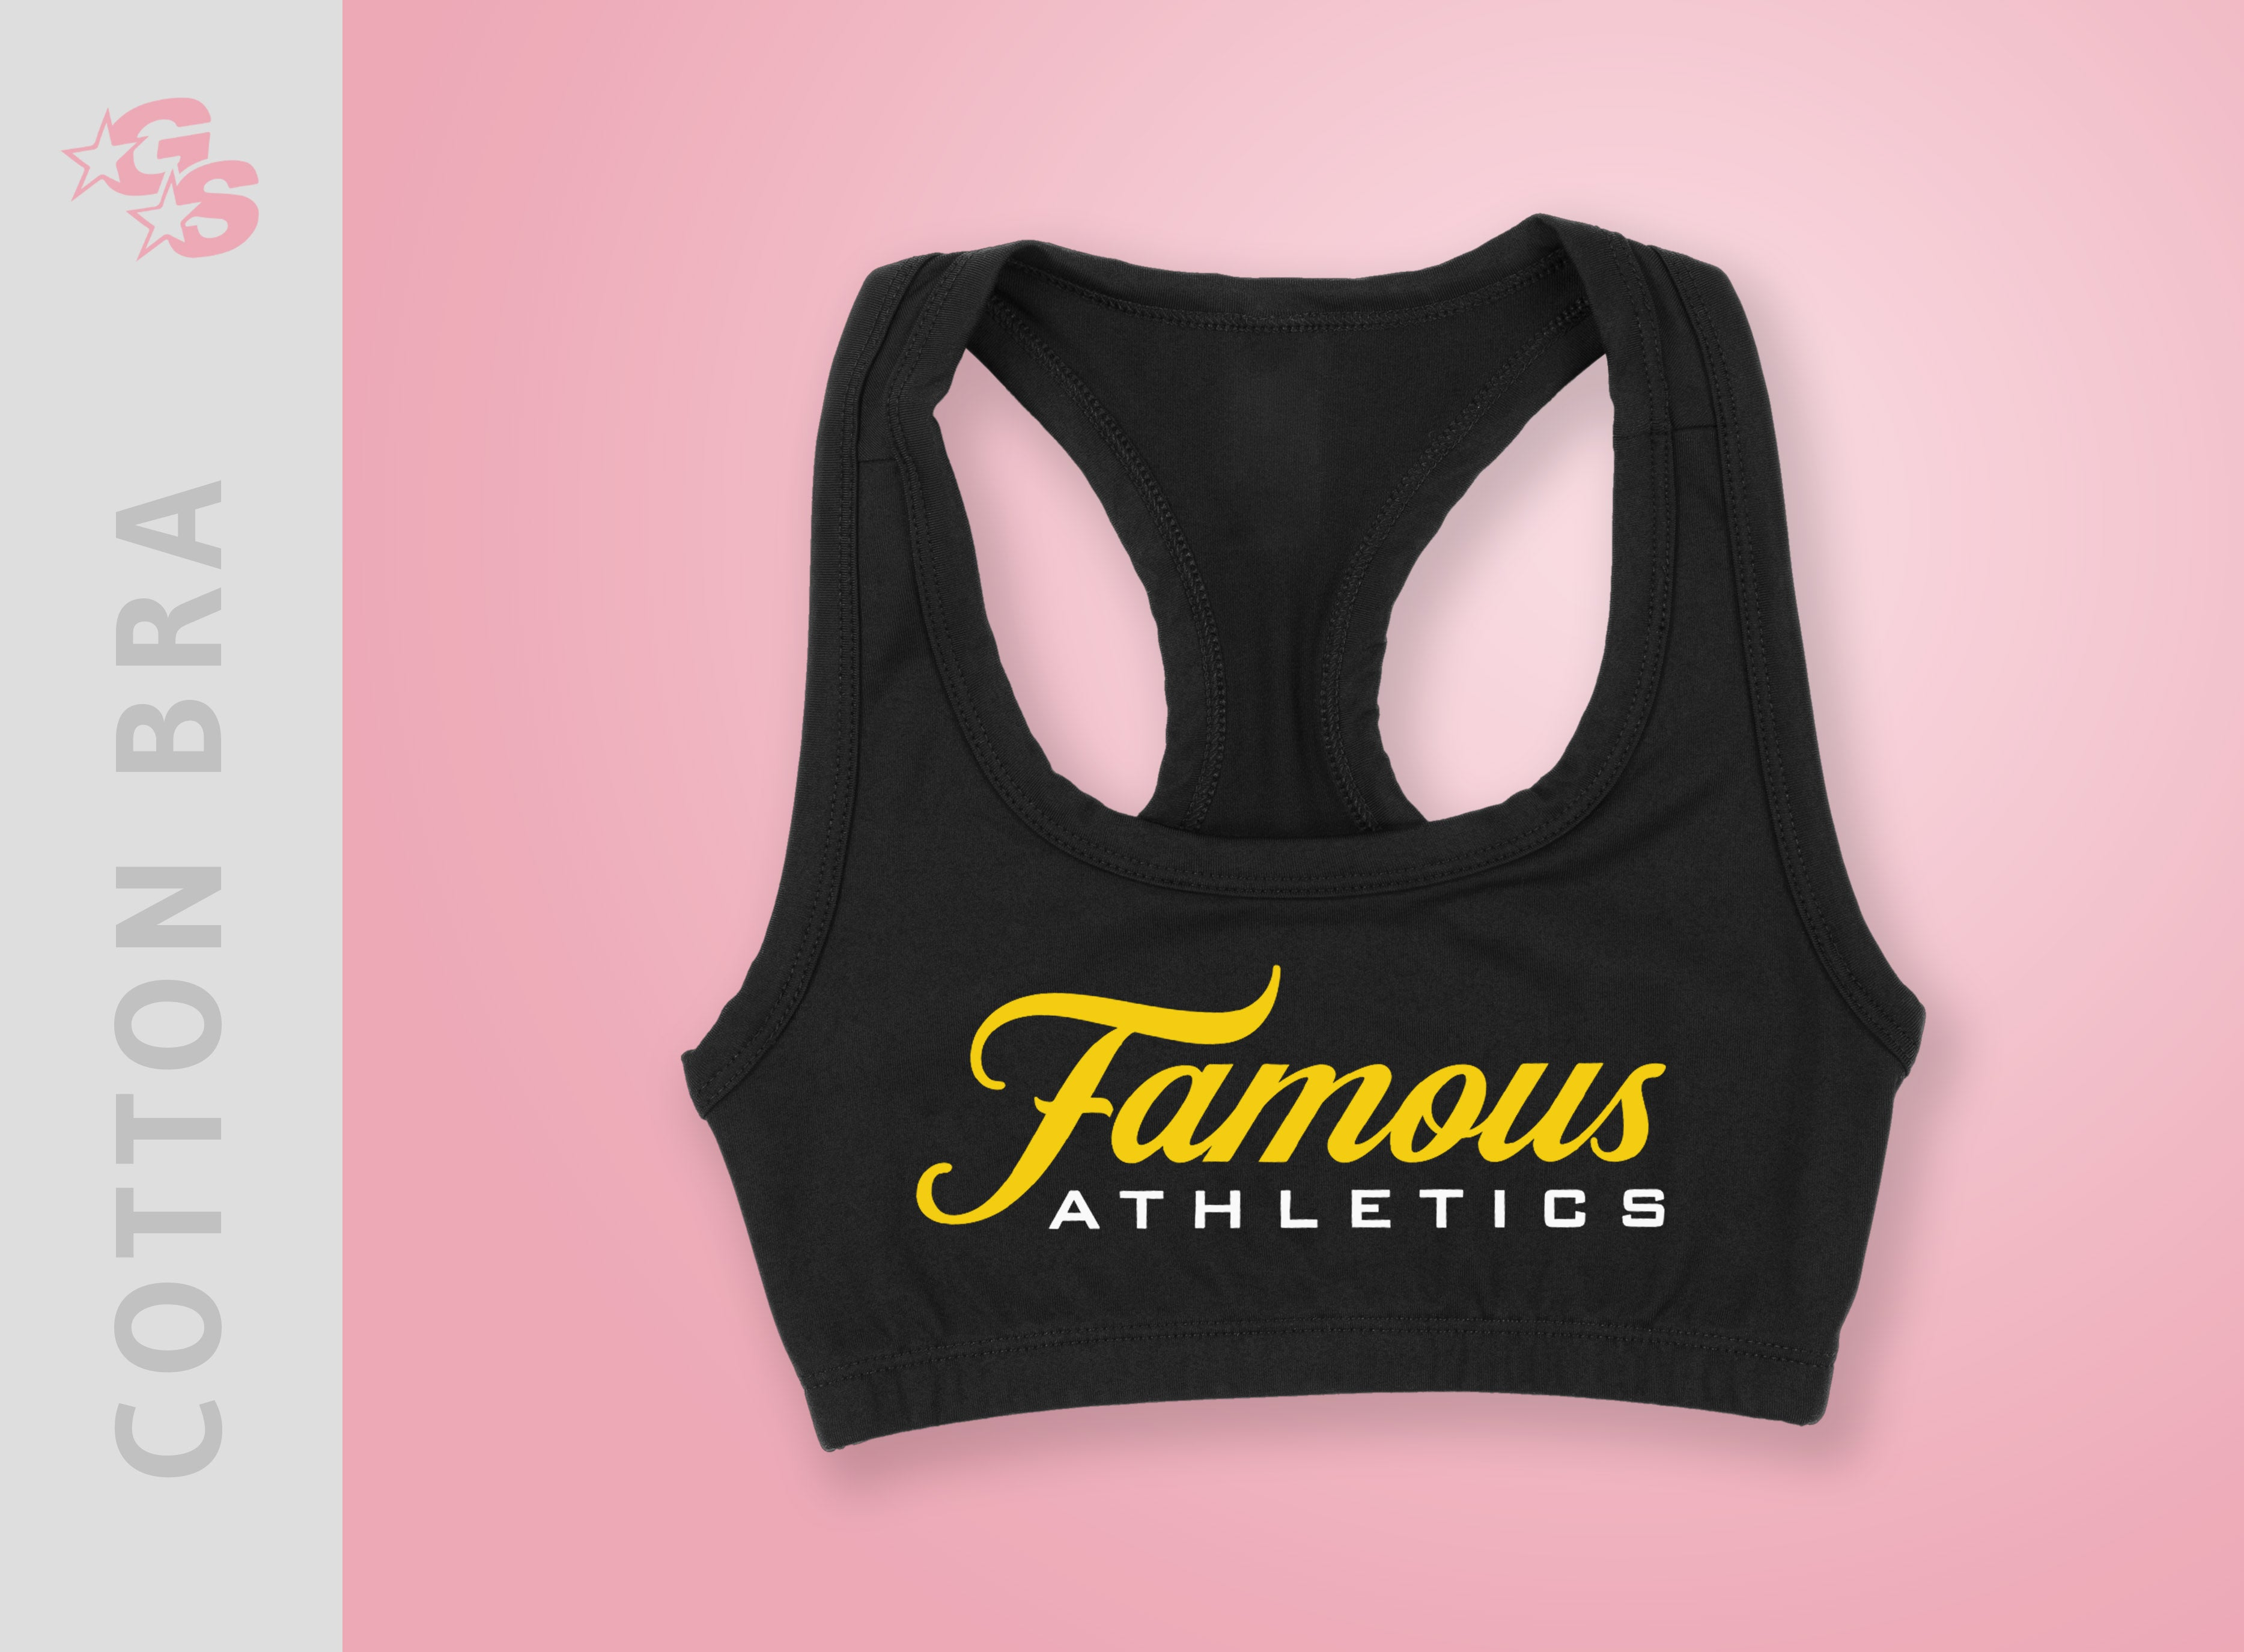 Cotton Bra (Black) with vinyl logo - Famous Athletics